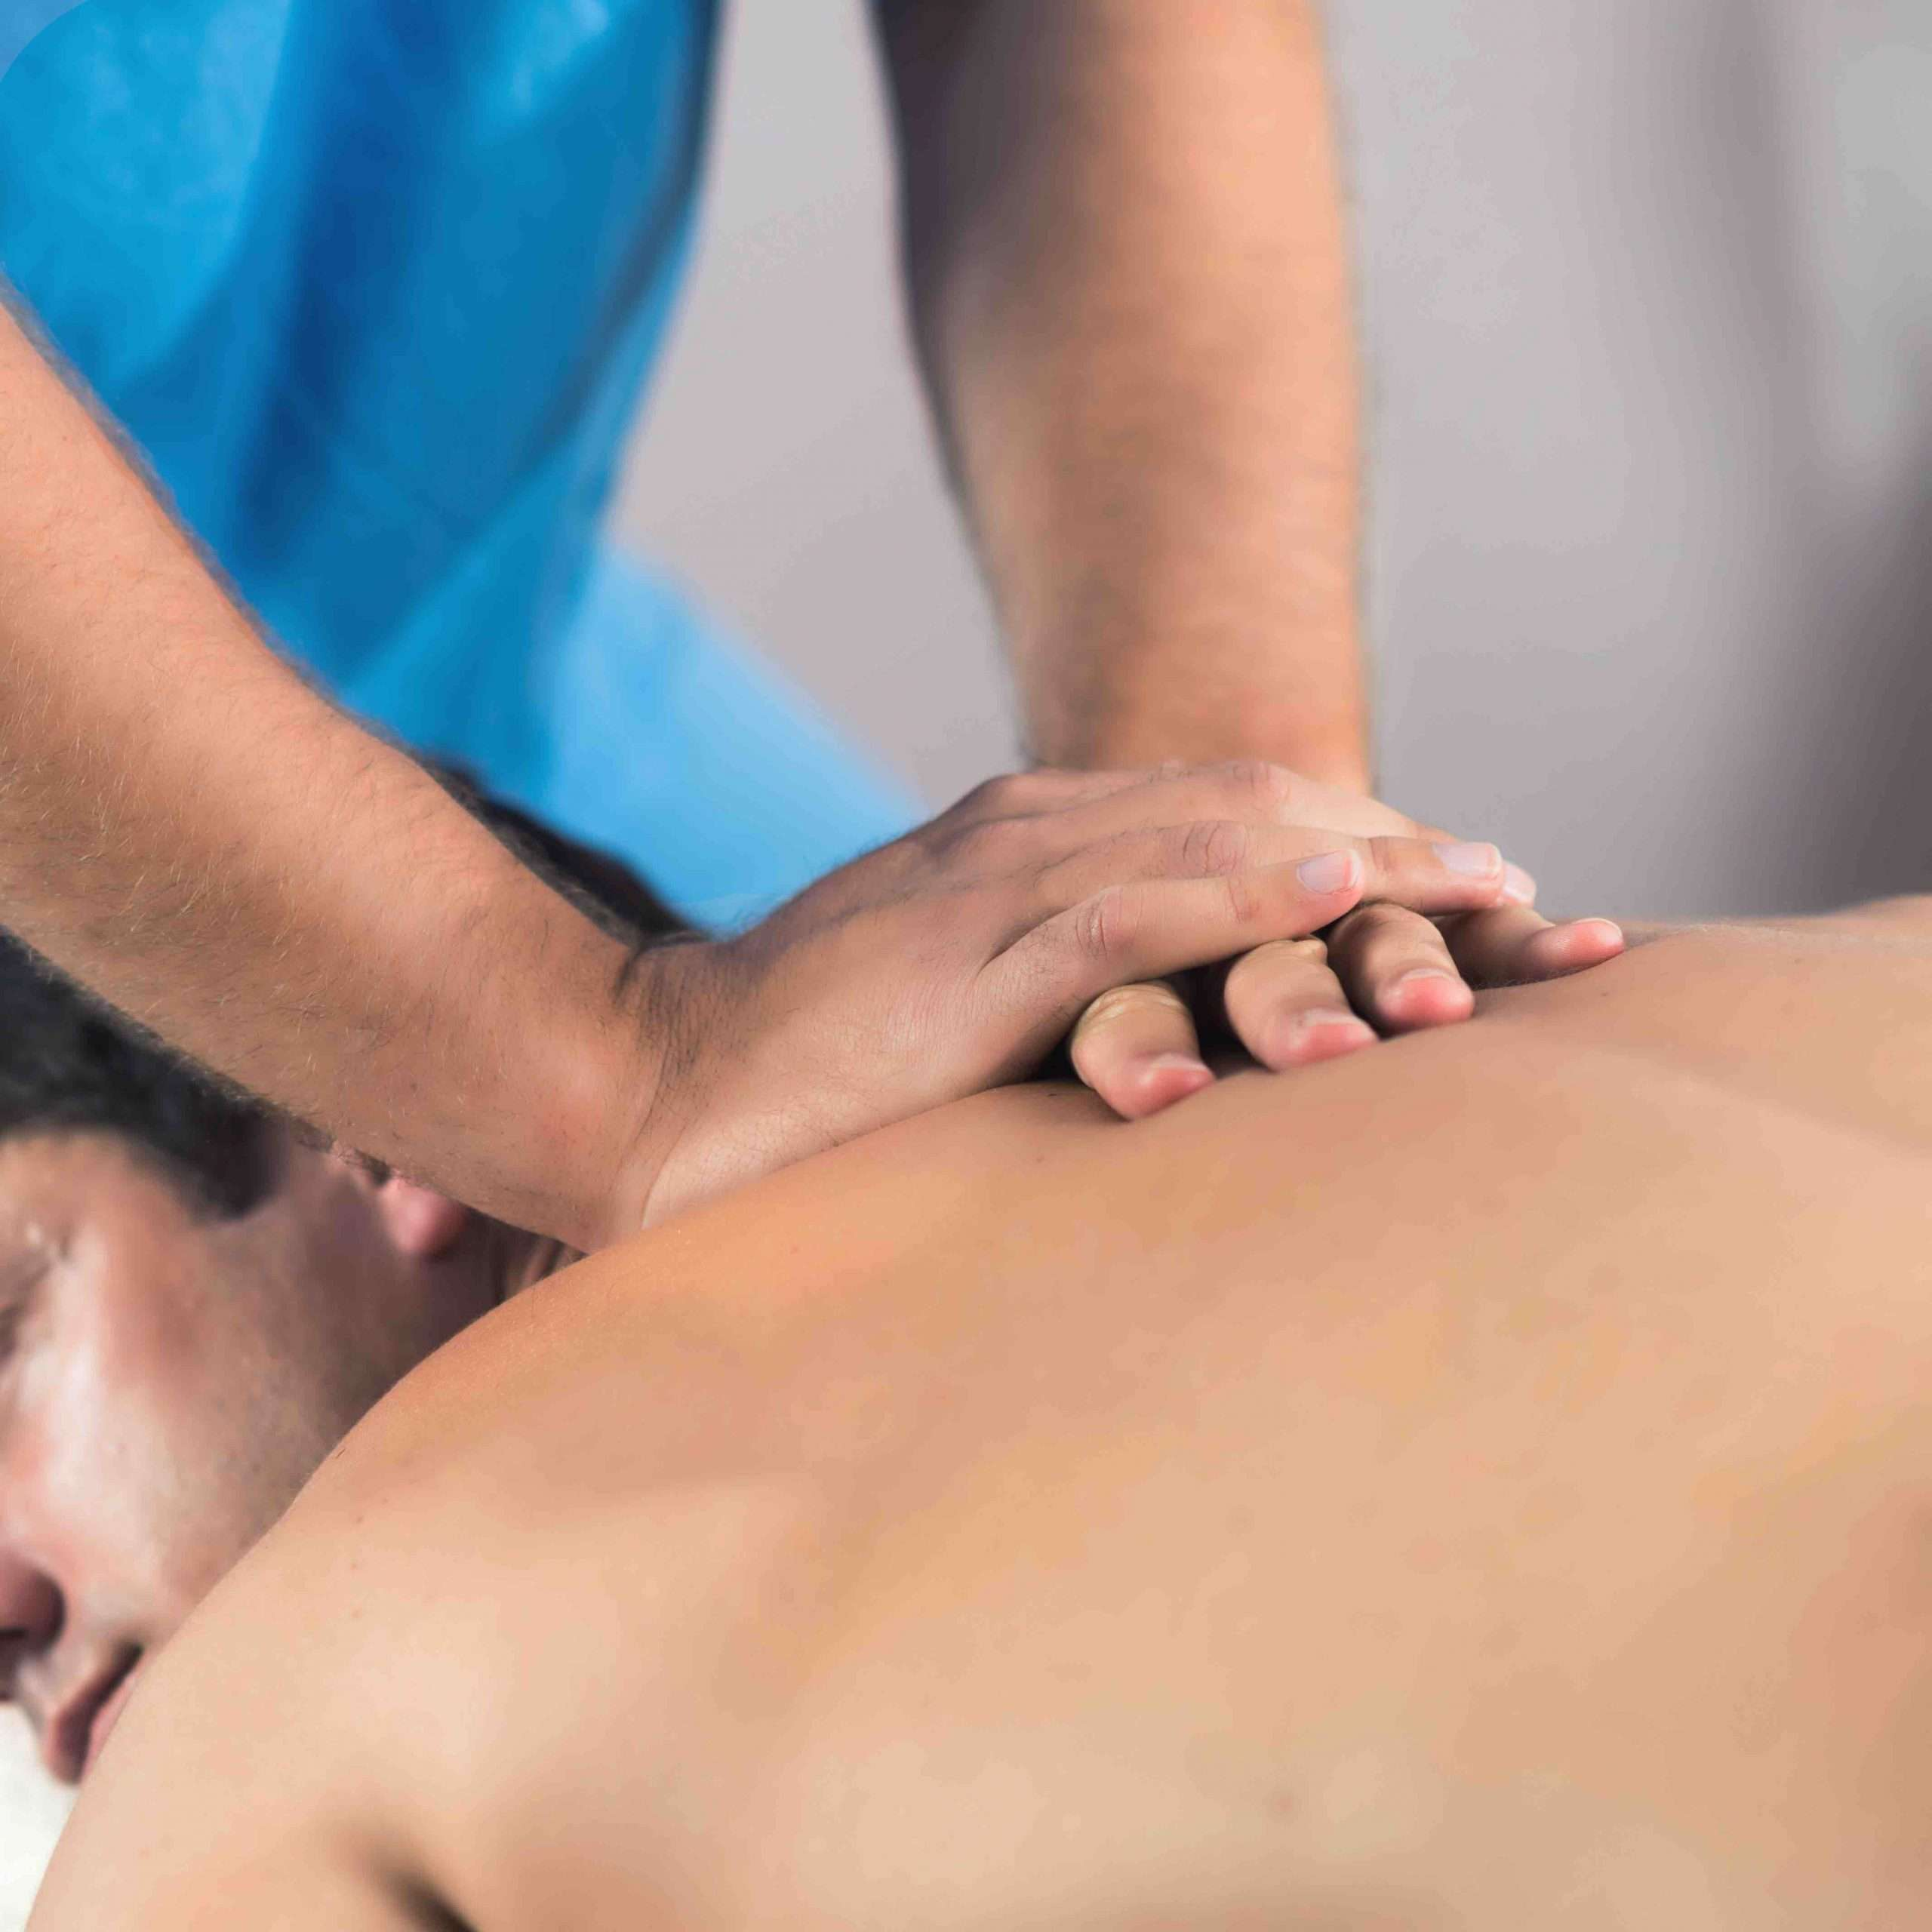 My Chiro, Dr. Aaron and Associates - Myofascial release therapy